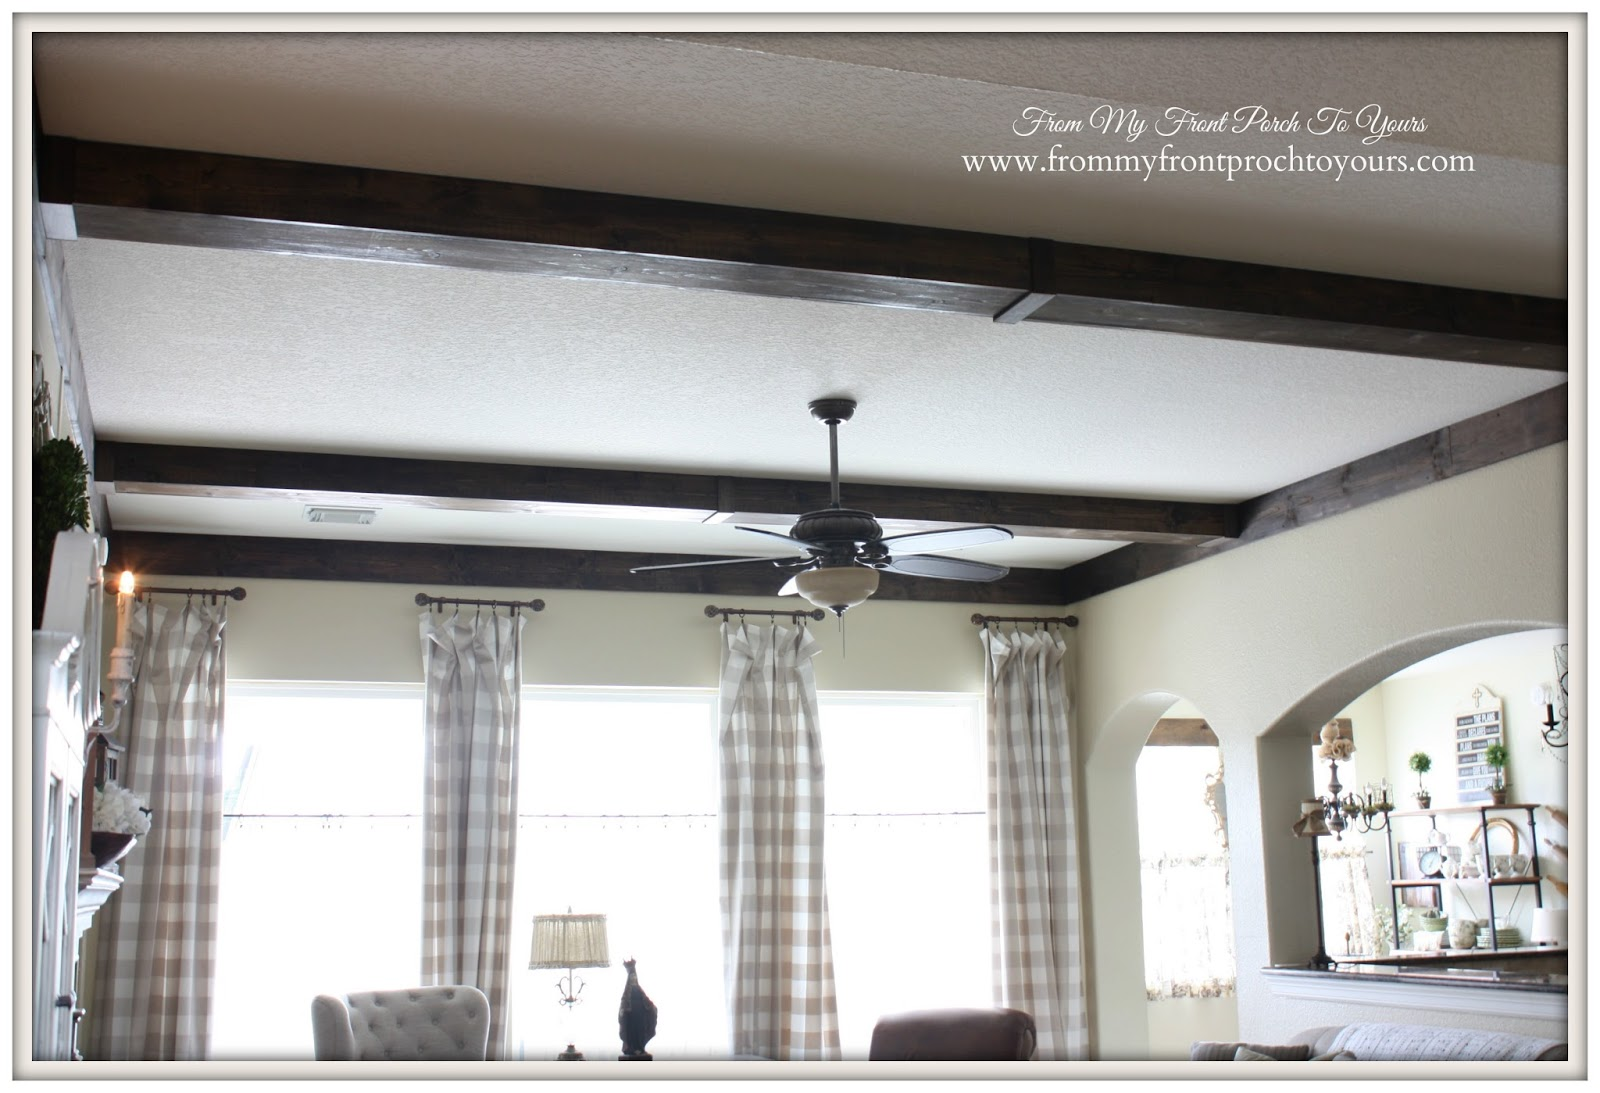 French Farmhouse living room with diy wood beams.- From My Front Porch To Yours